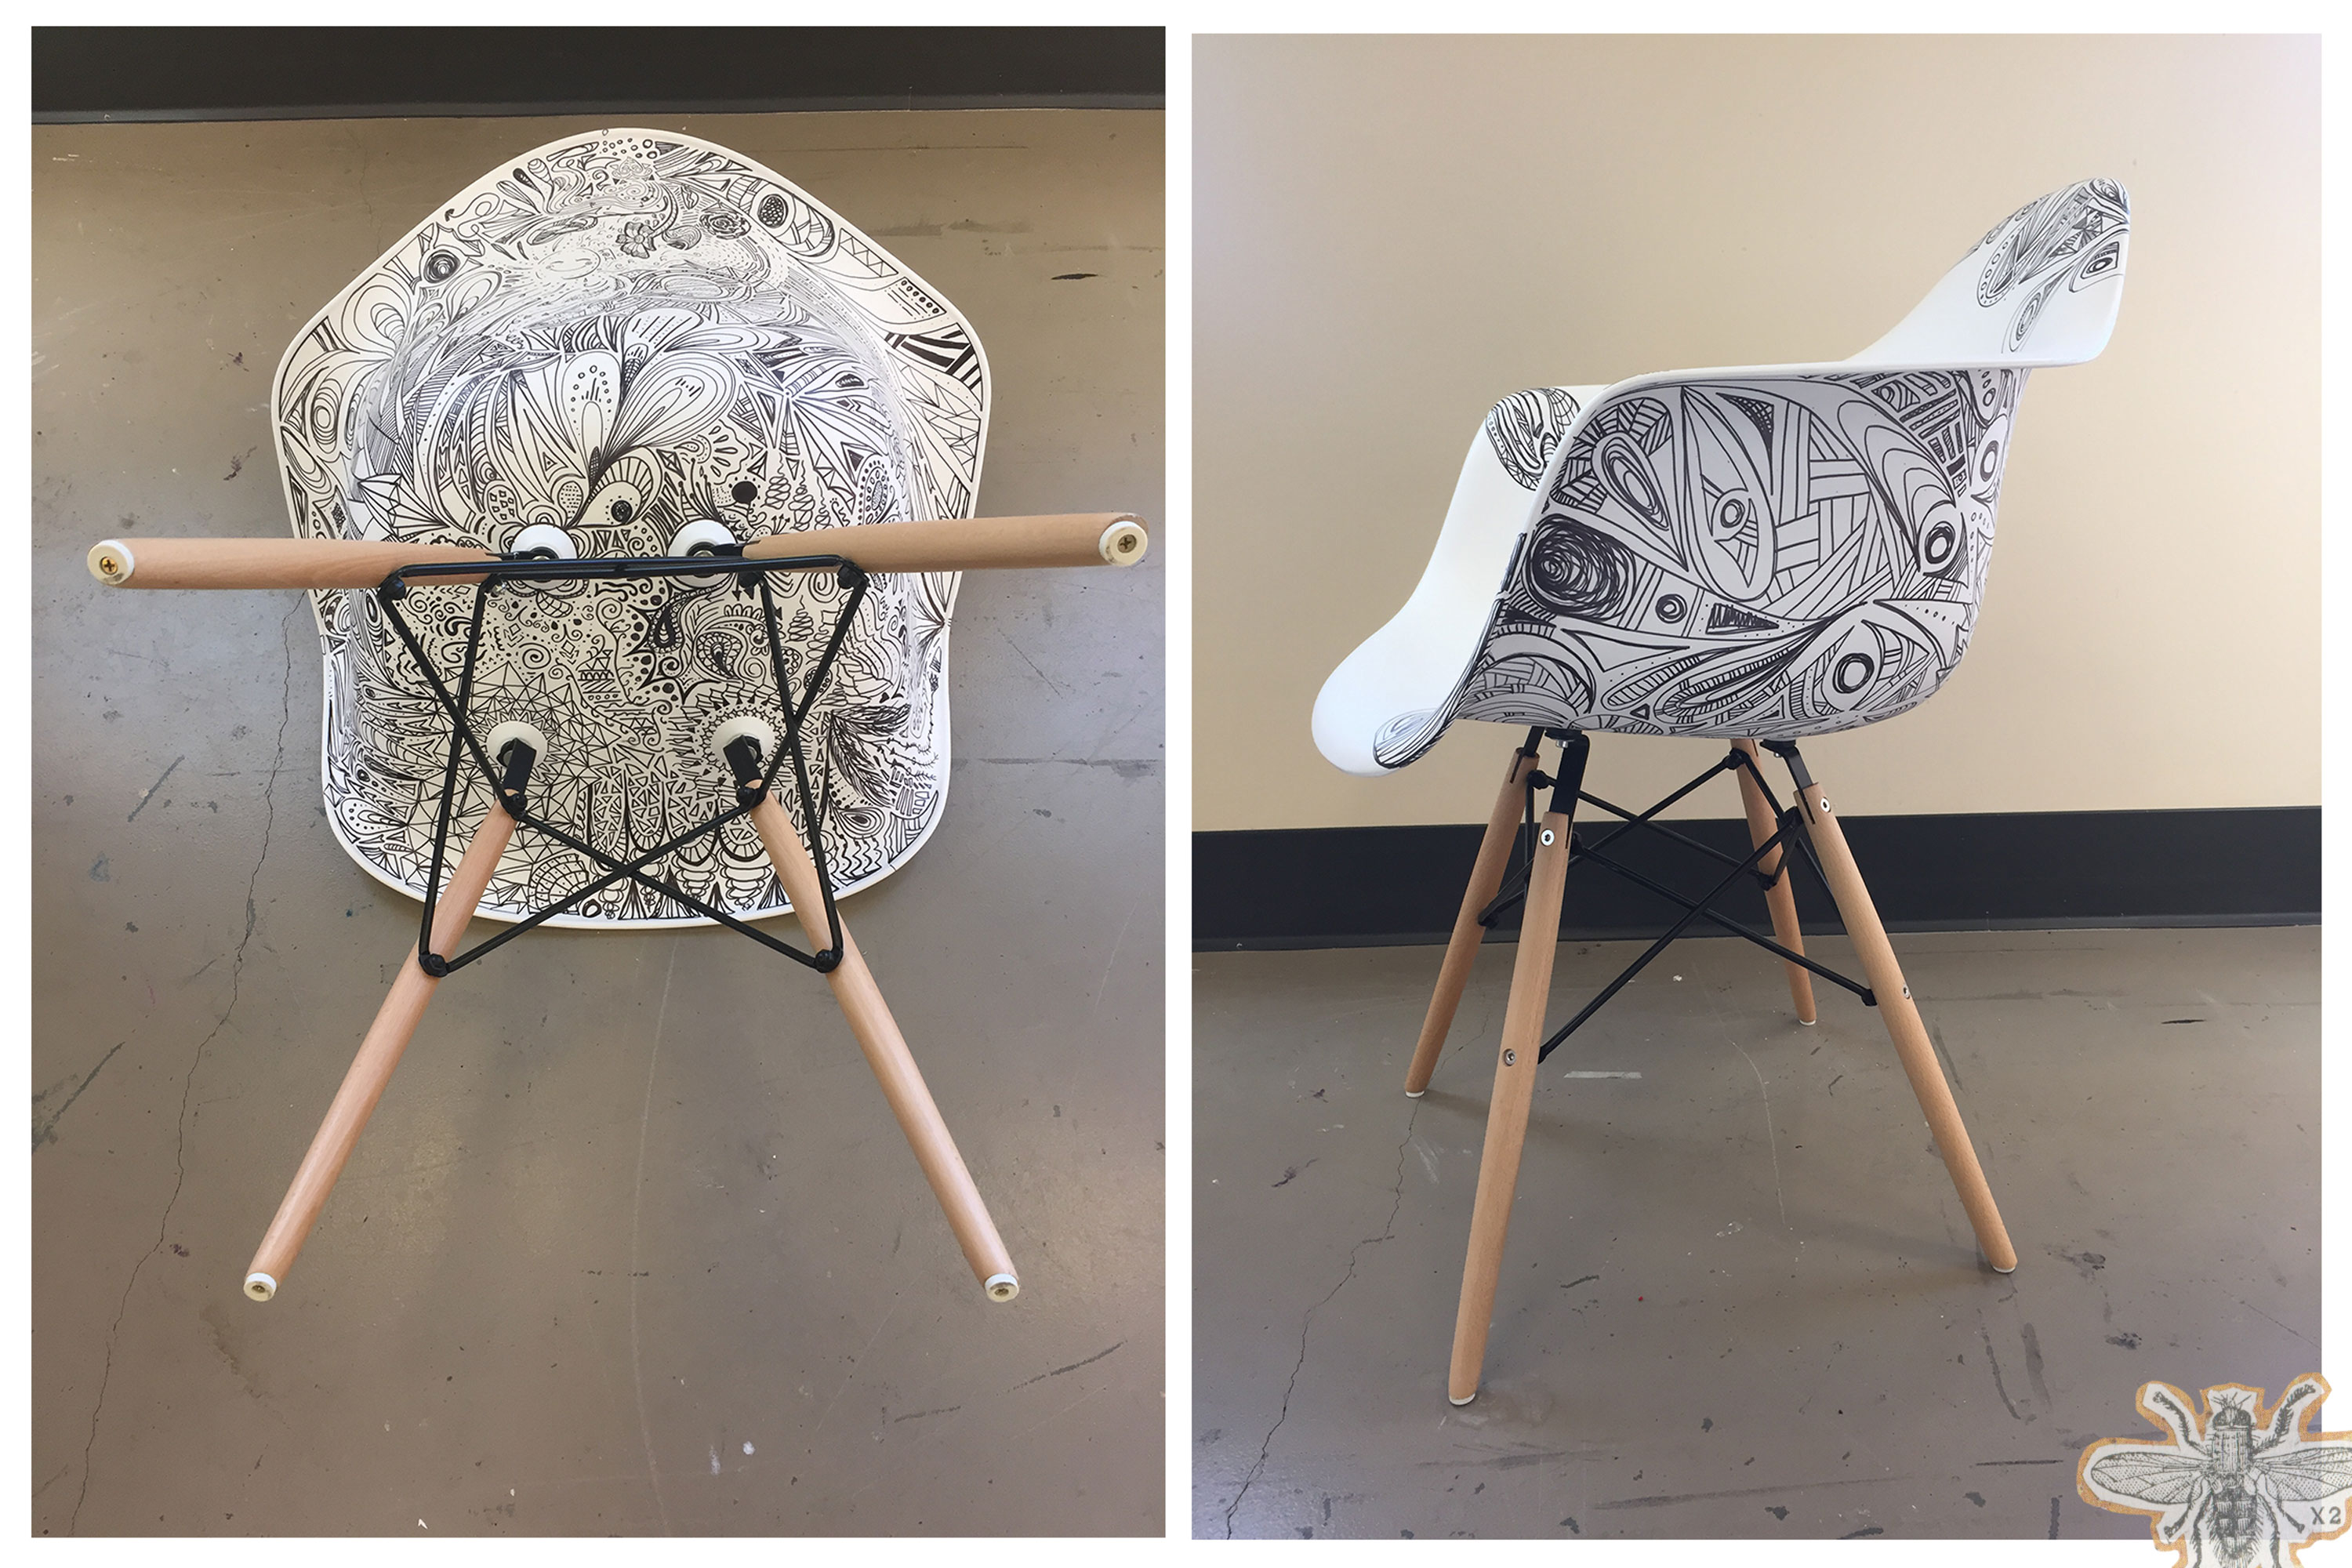 Two modern white chairs that have been decorated with Sharpie doodles.